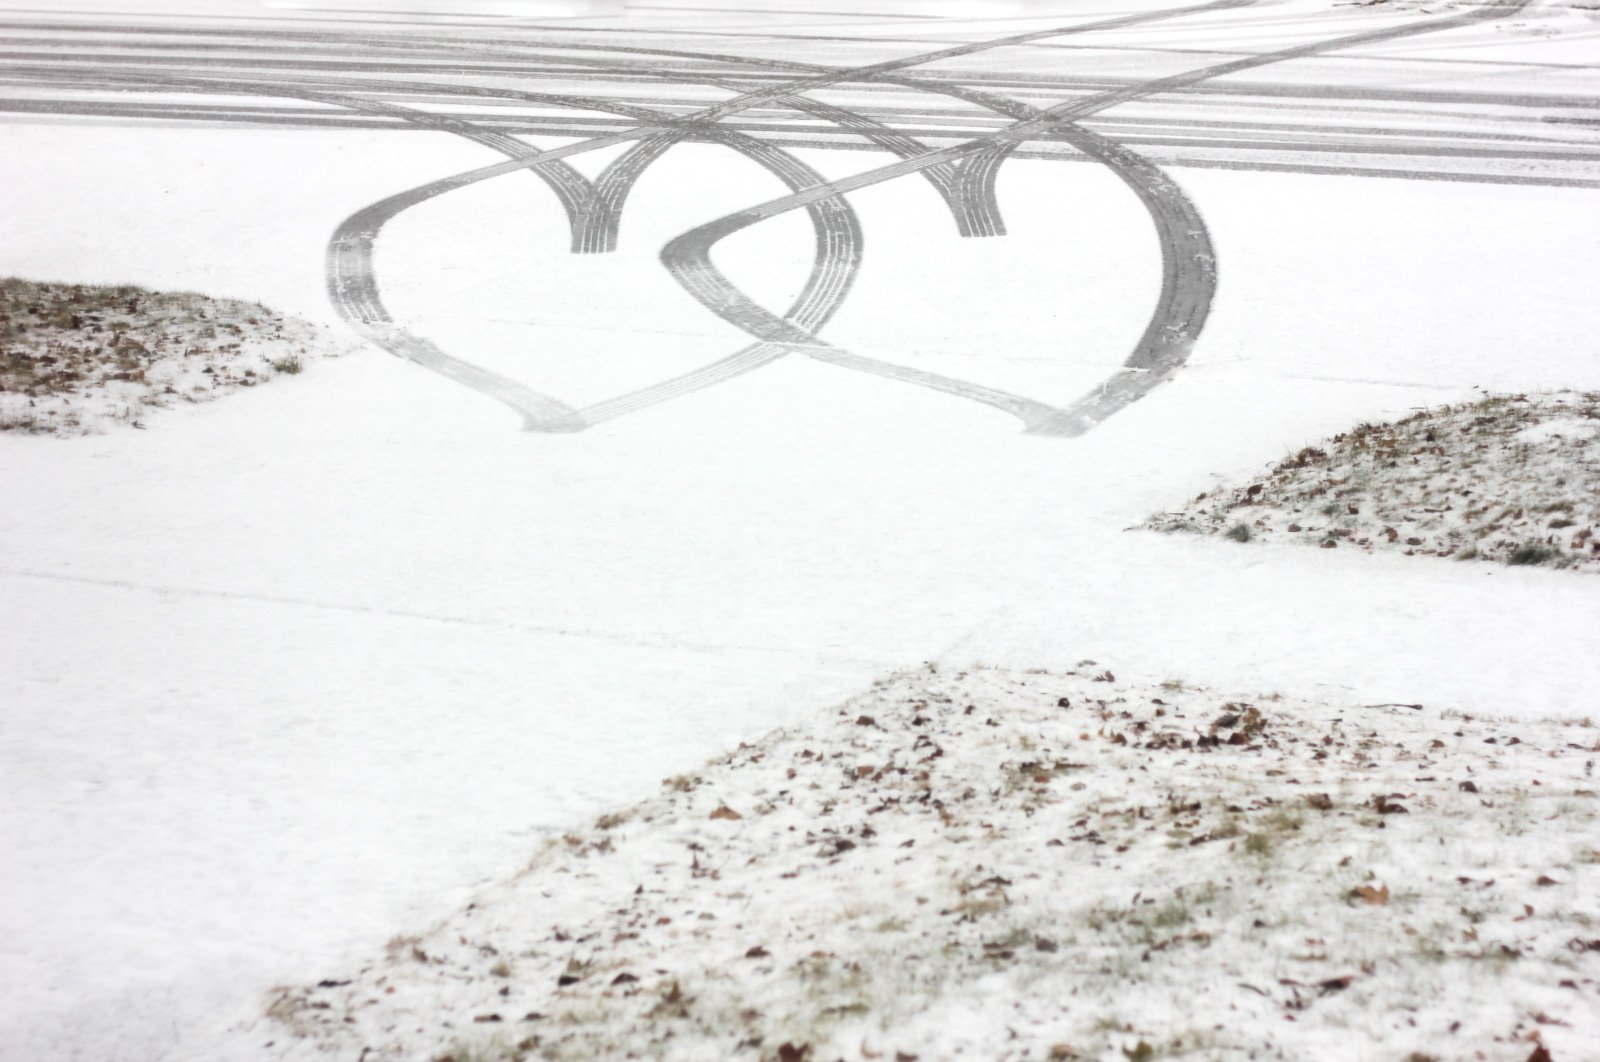 Laura Kuisle-heart-shapes-in-snow-on-driveway_studiokuisle